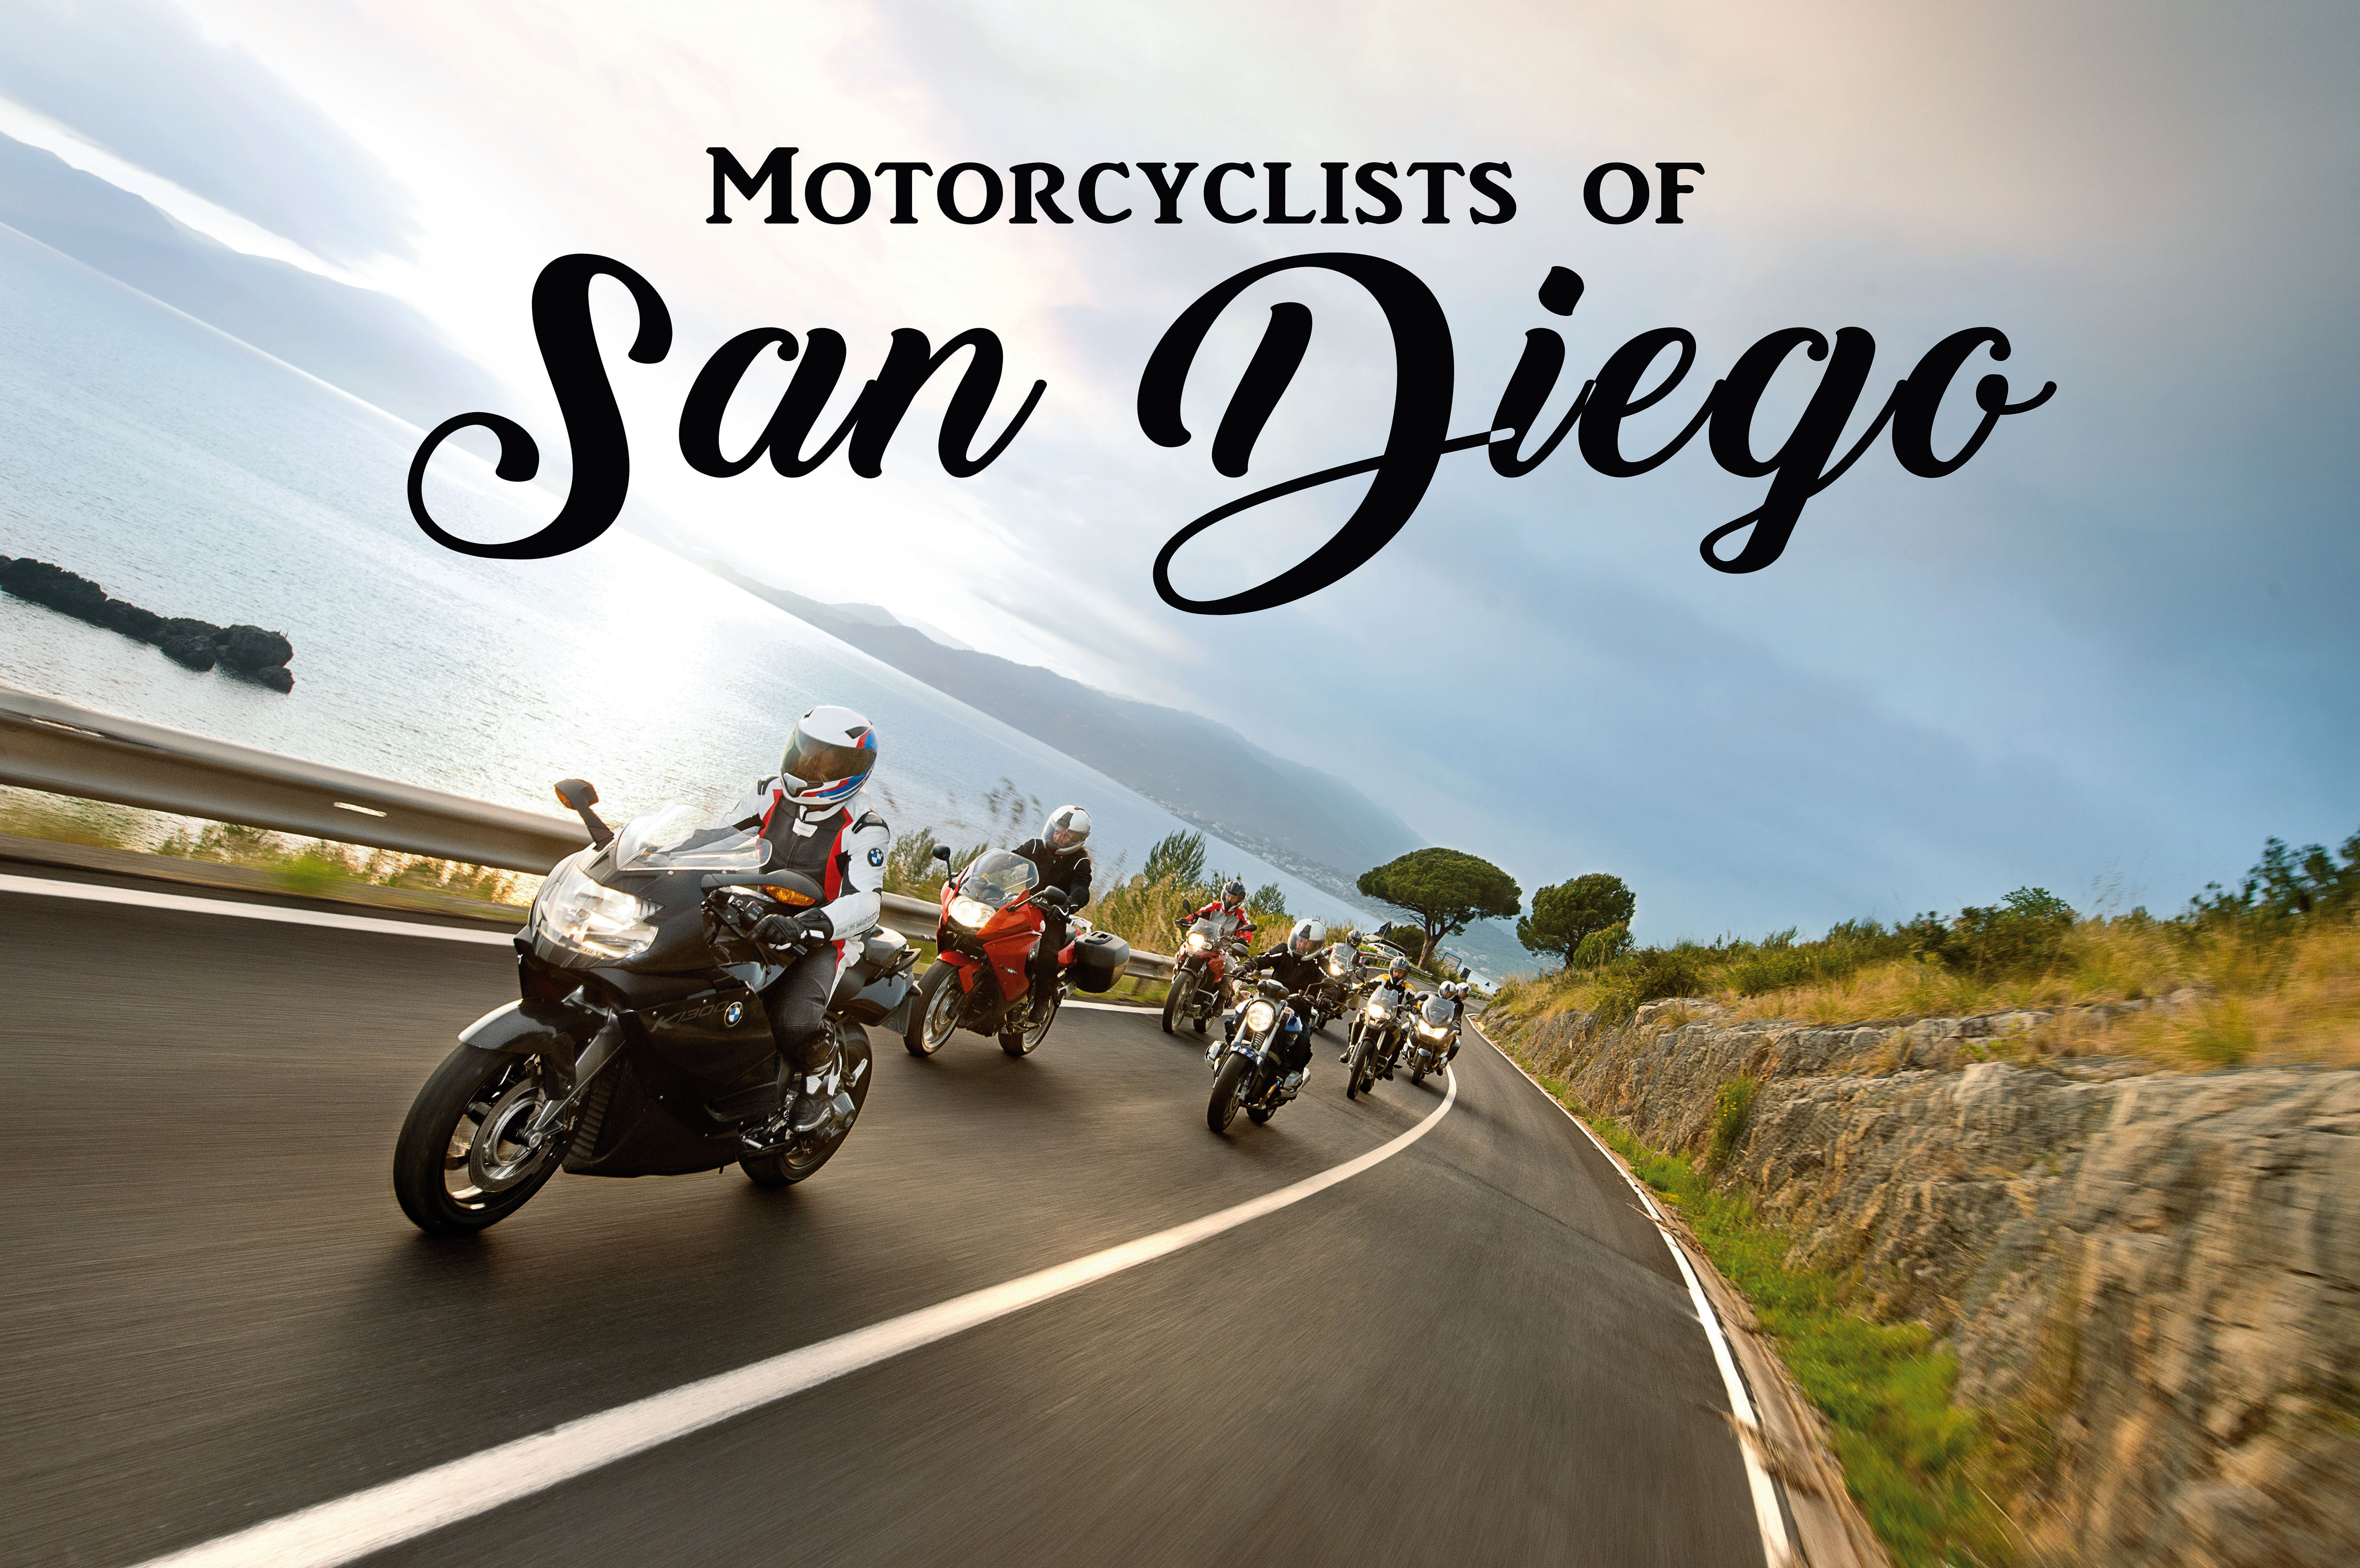 Motorcyclists of San Diego